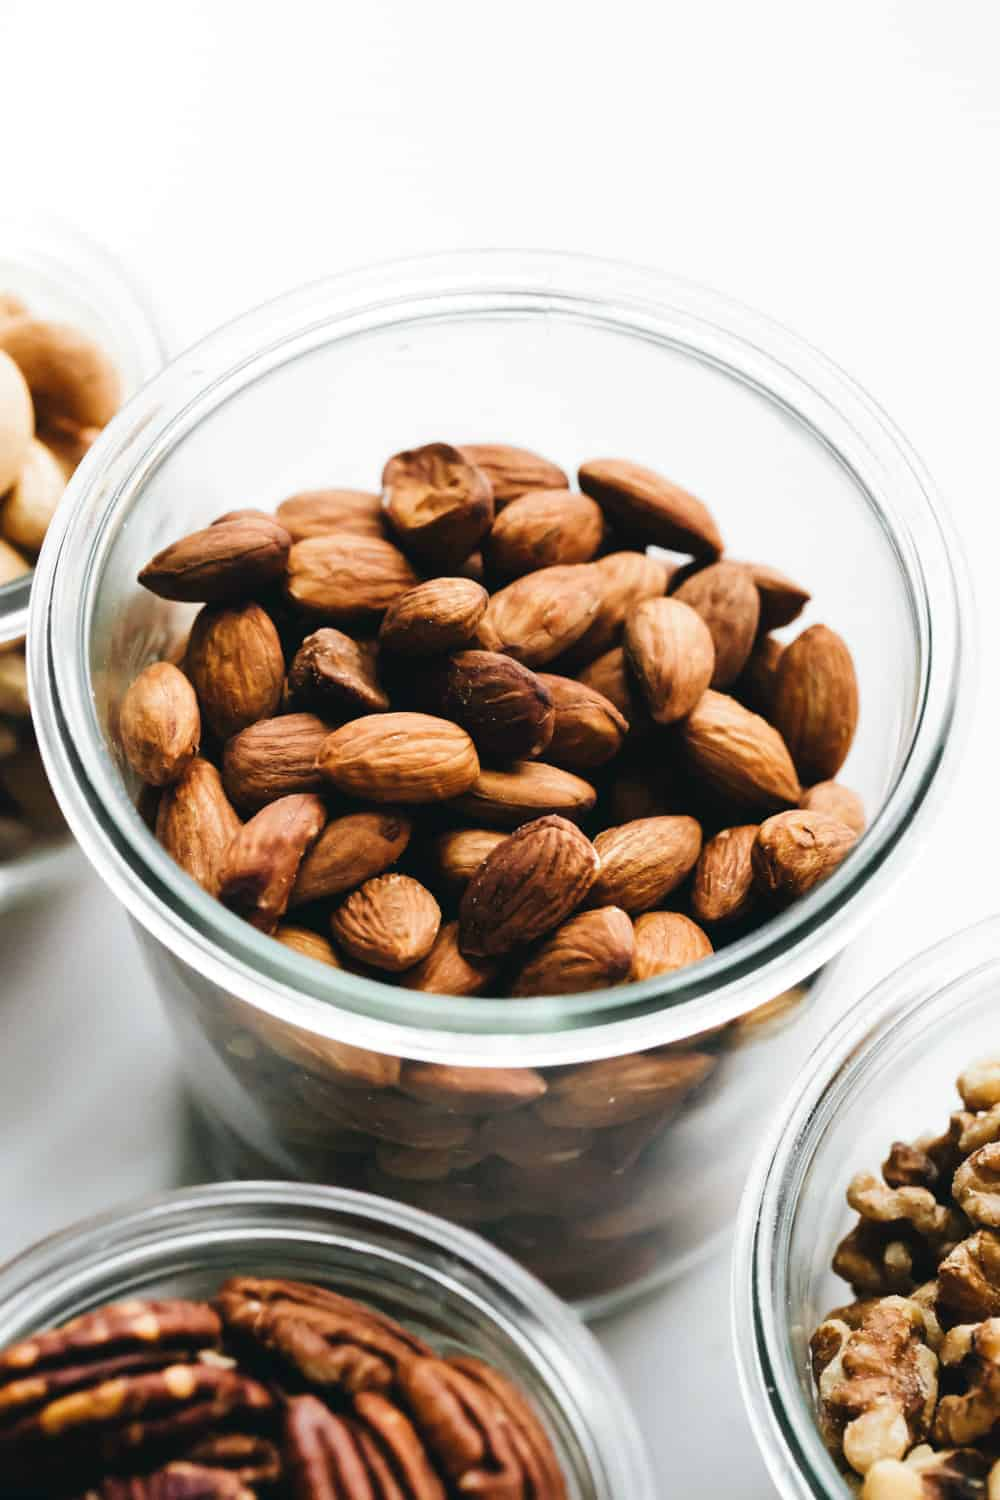 Toasted whole almonds in a glass jar